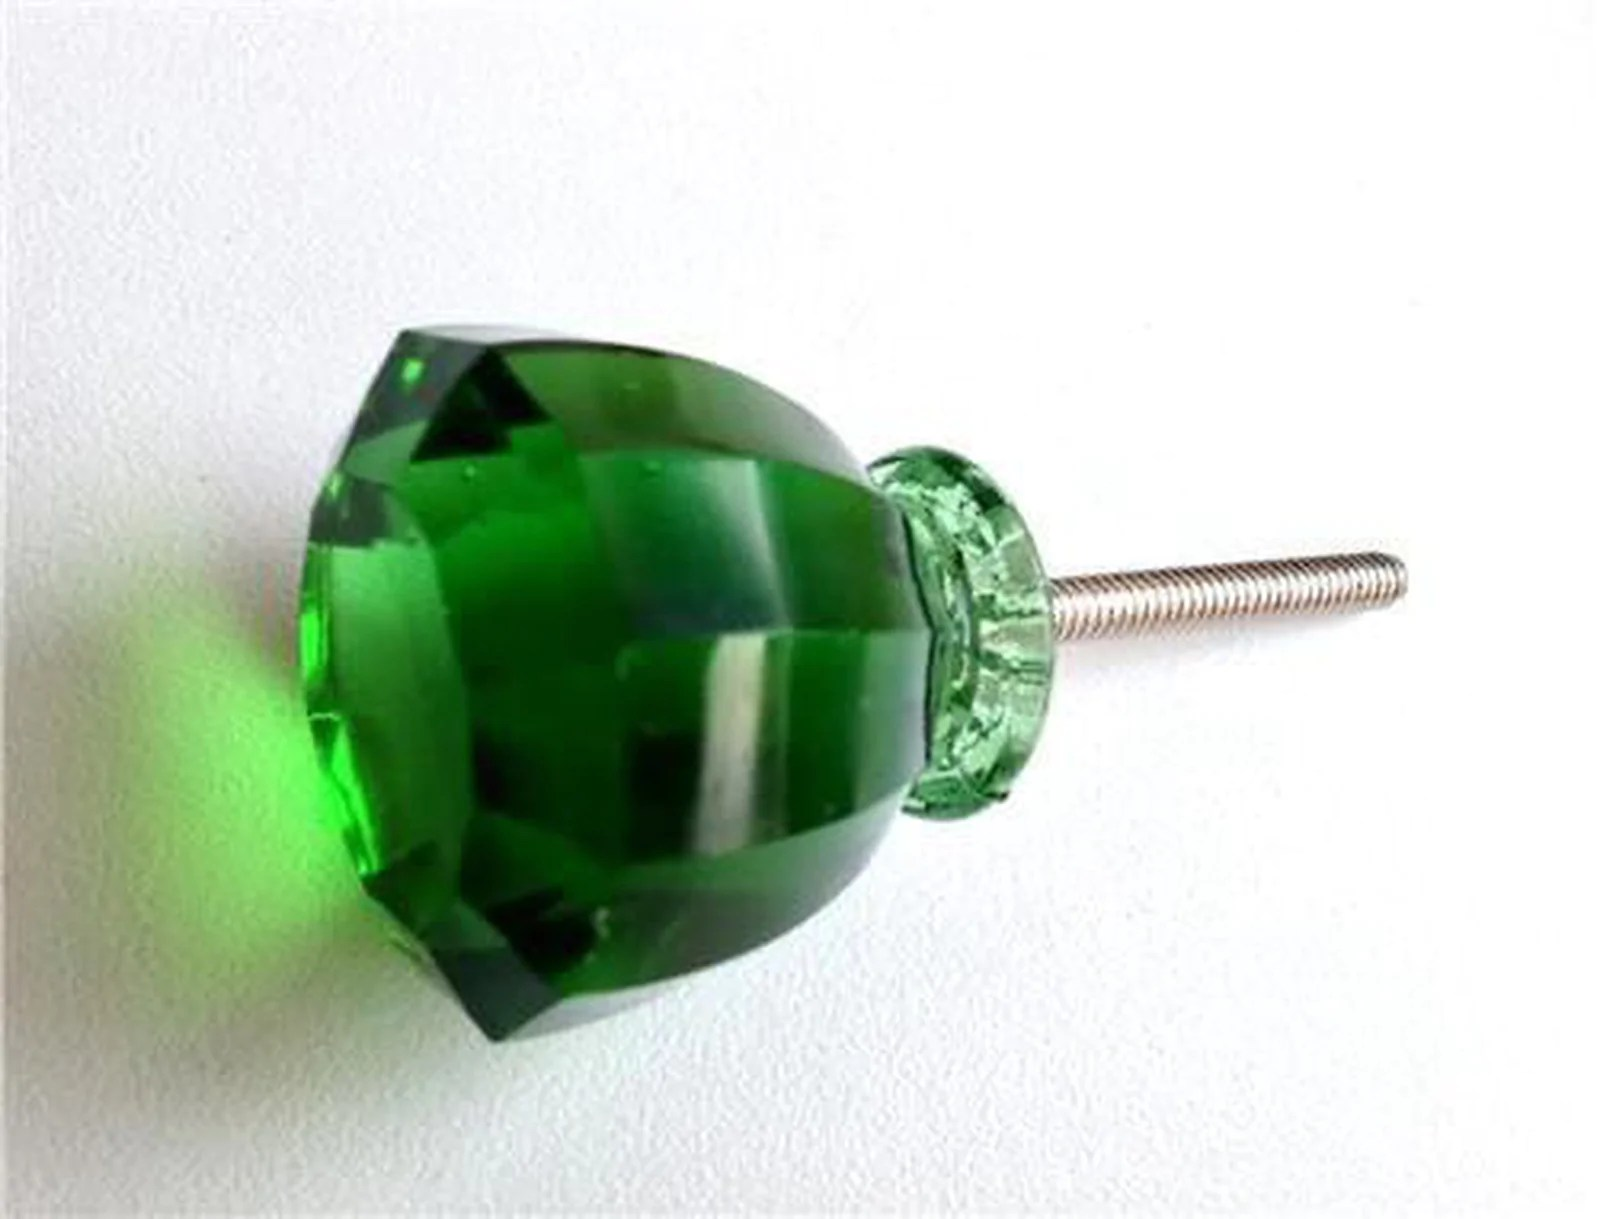 Antique Vintage Emerald Green Glass Cabinet Knobs Drawer Pulls S Dwyer Home Collection